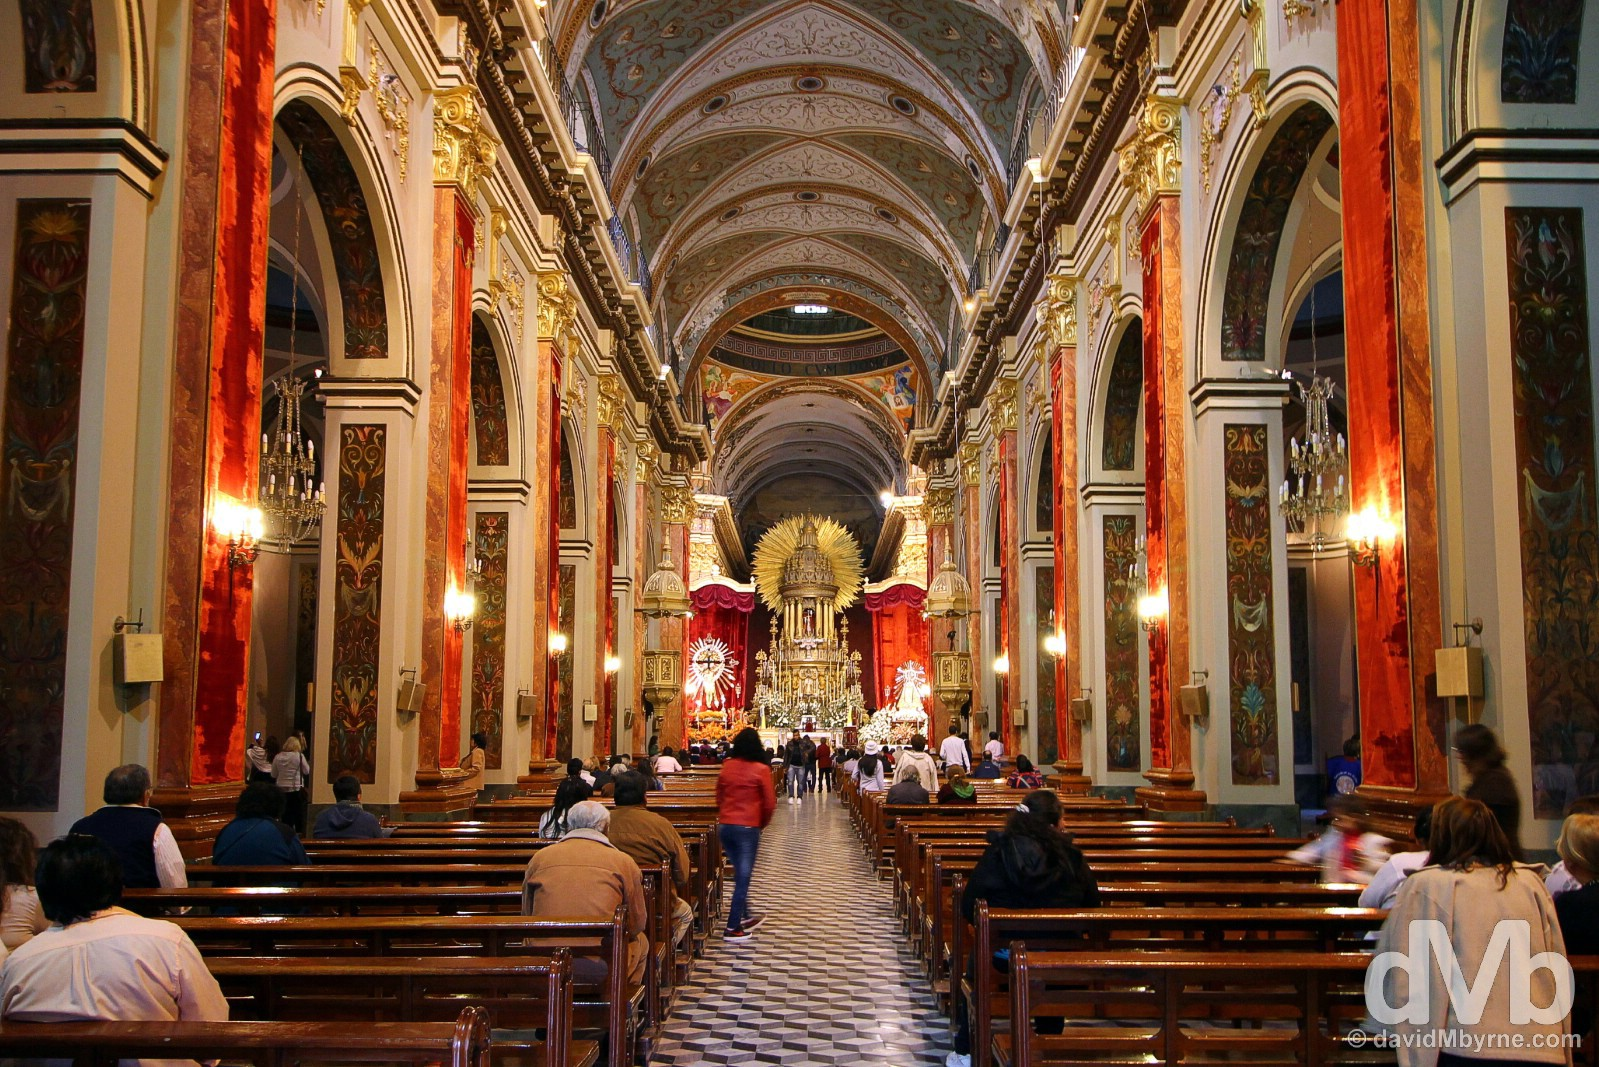 The interior of the Catedral in Salta, northern Argentina. September 5, 2015.